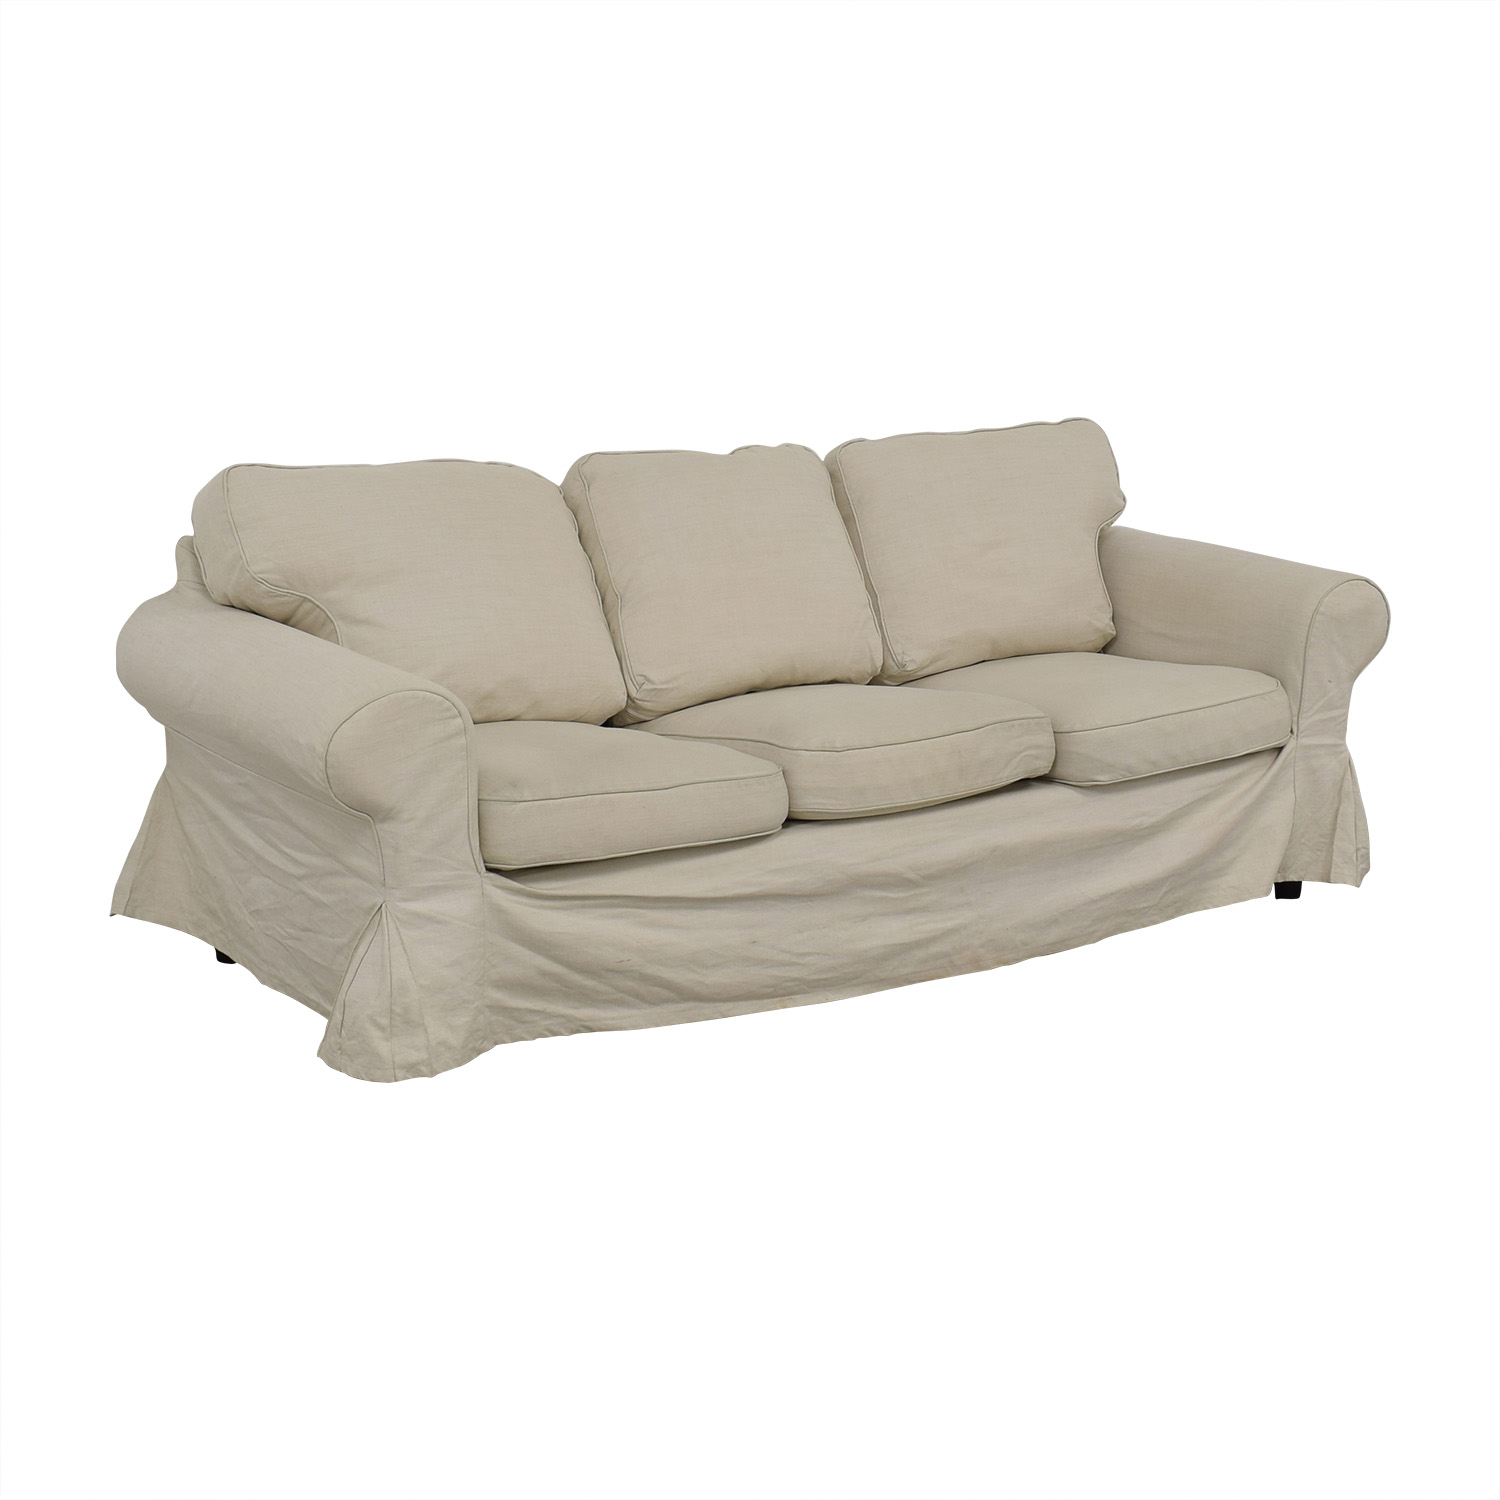 Ektorp Sofa From Ikea 90 Off Ikea Ikea Ektorp Lofallet Beige Three Cushion Sofa Sofas